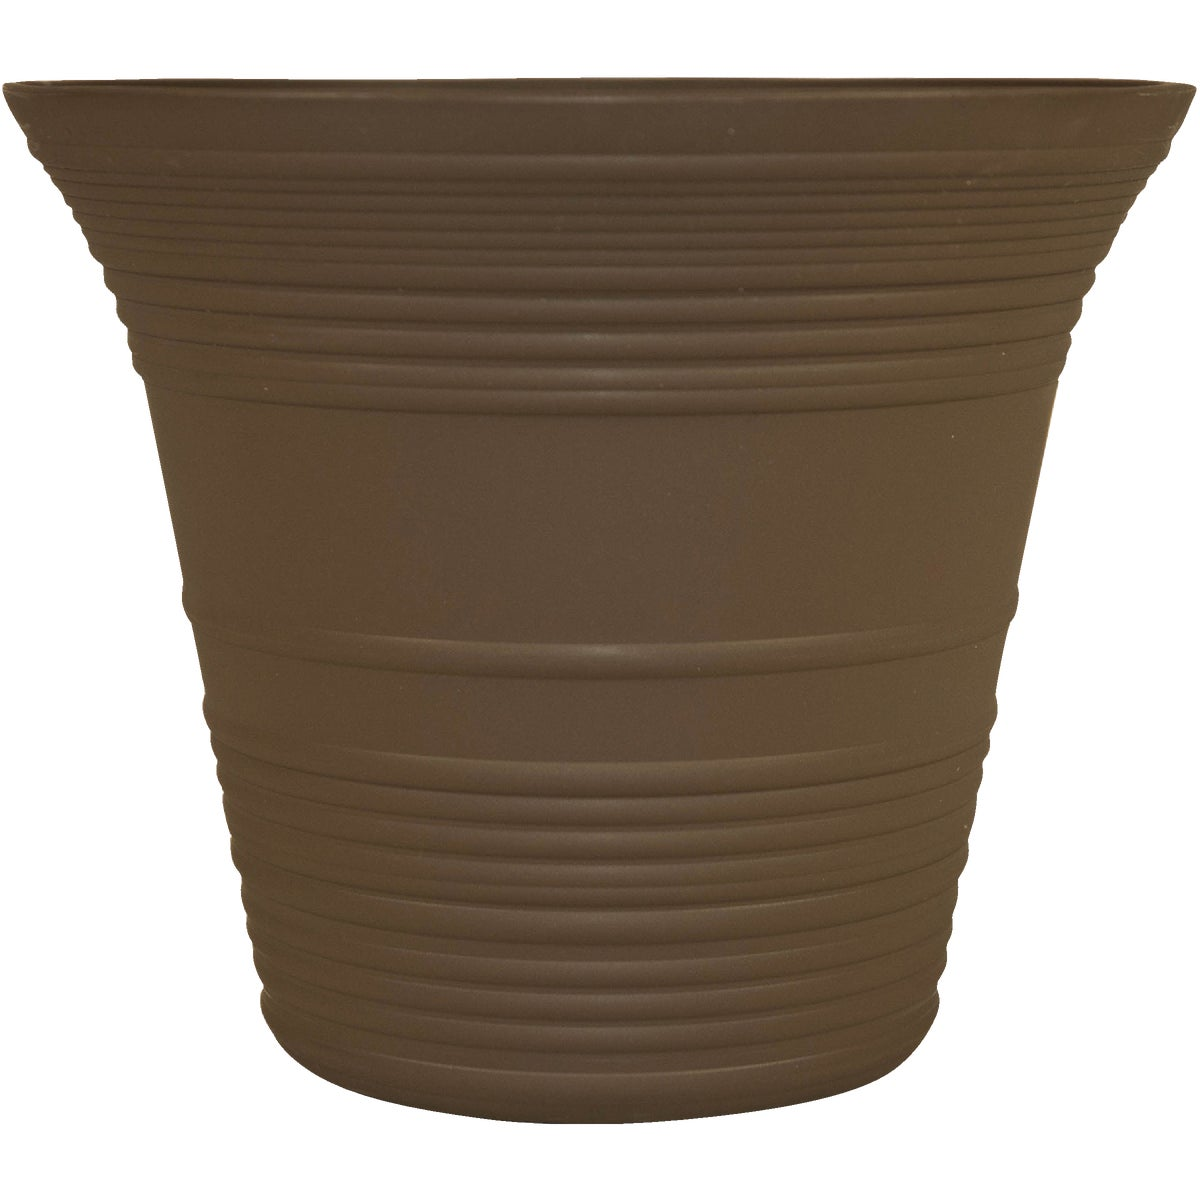 "9"" BROWN SEDONA PLNTER - SEA09001E41 by Myers Industries Inc"